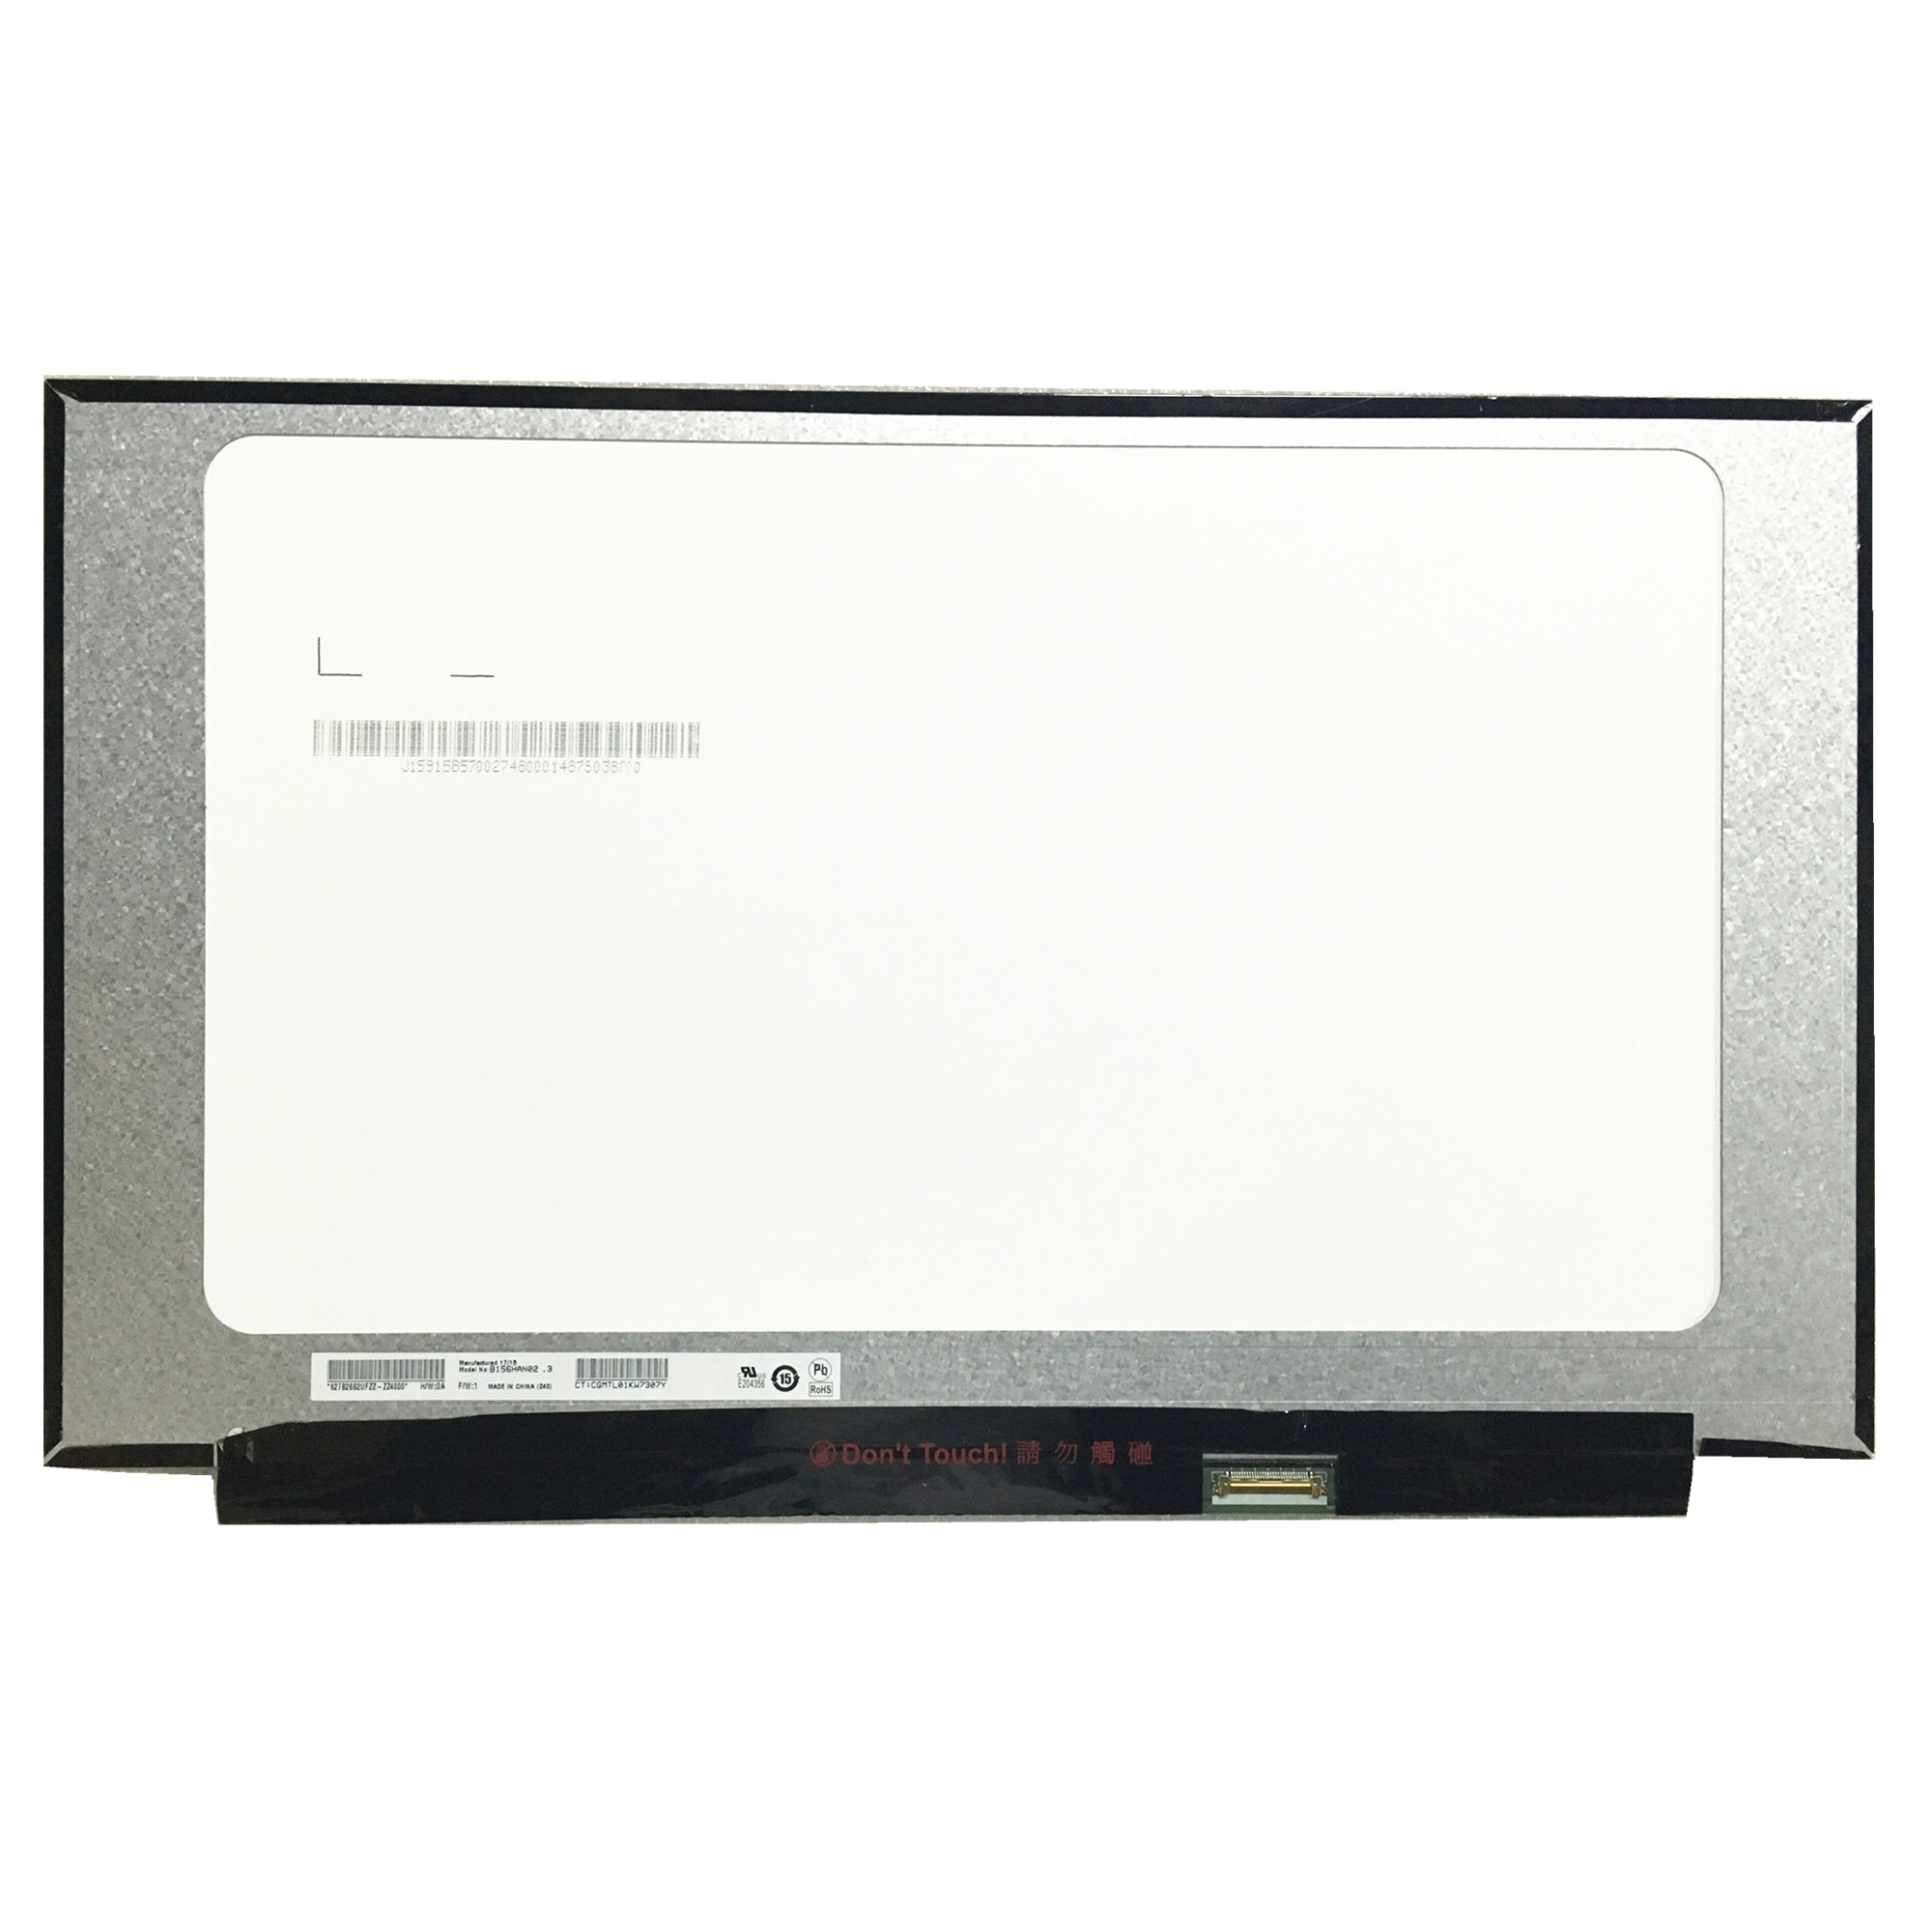 Free Shipping B156HAN02.3 B156HAN02.4 B156HAN02.2 B156HAN02.1 Laptop Lcd Screen 1920*1080 EDP 30Pins IPS